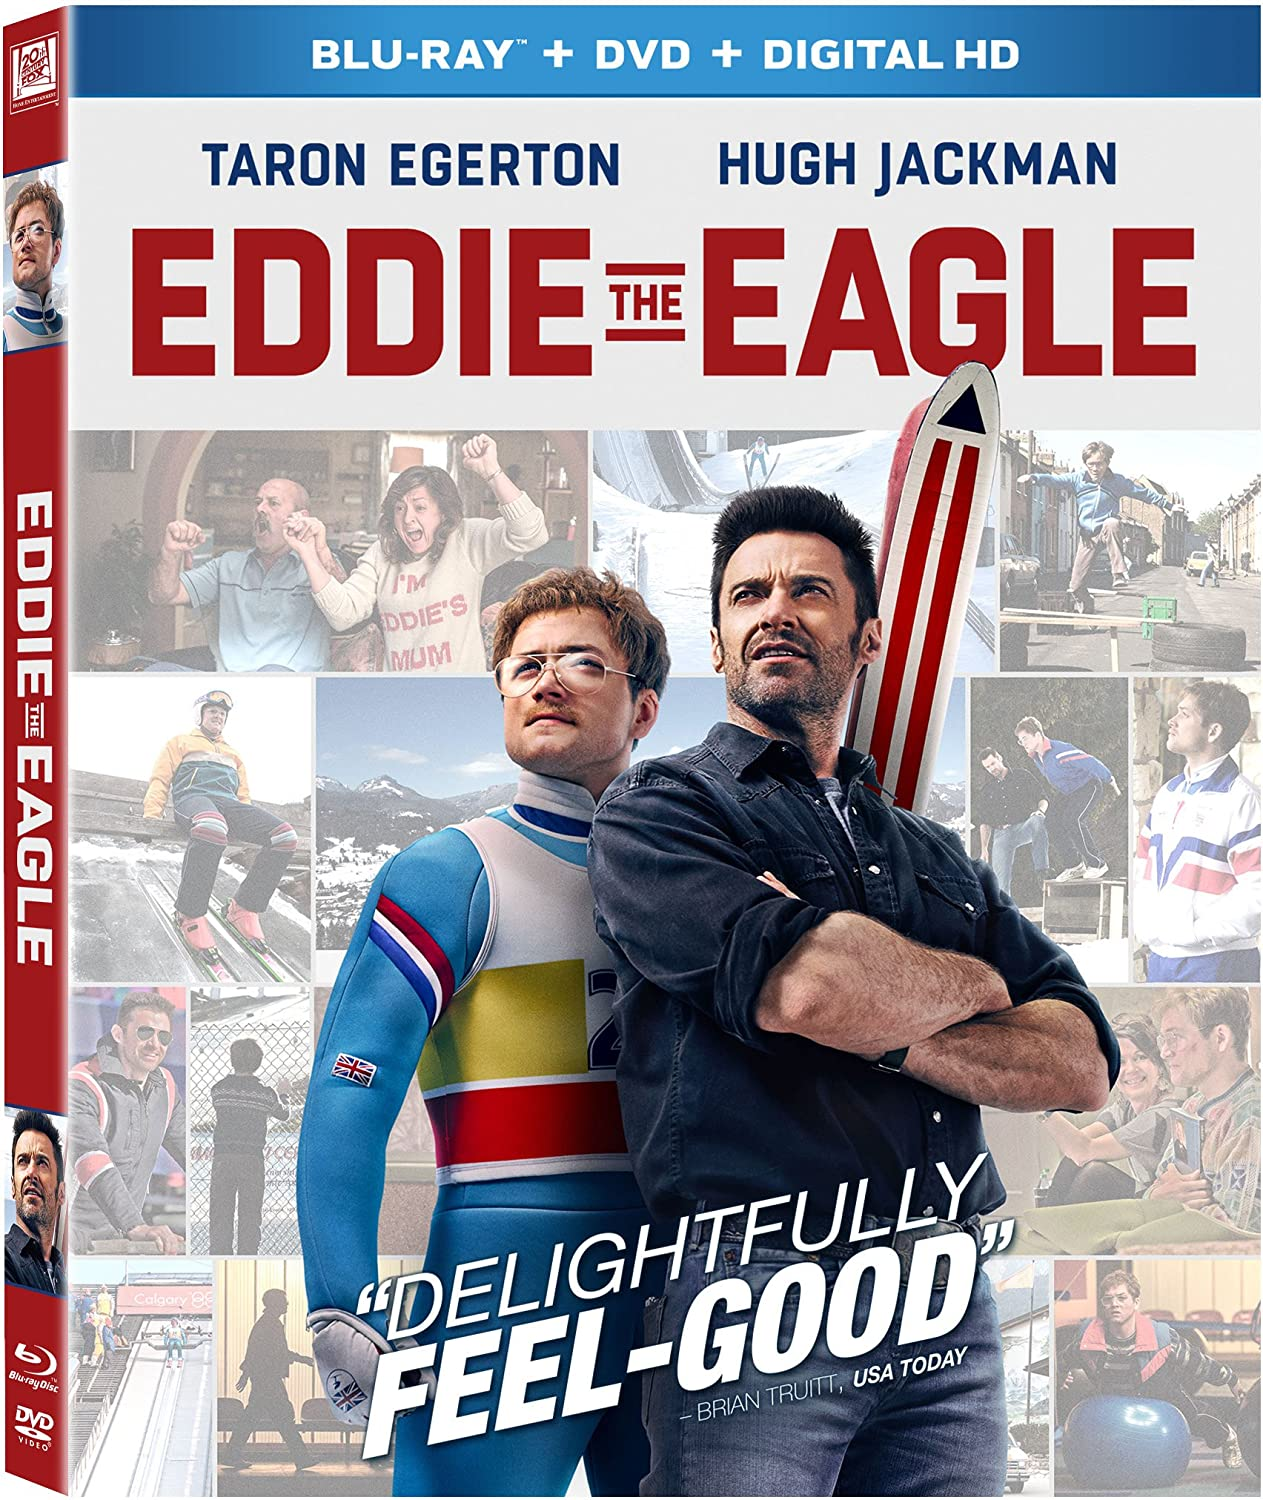 Eddie the Eagle (2016) 720p + 1080p BluRay x264 ESubs Dual Audio [Hindi BD DD5.1 + English DTS 5.1]